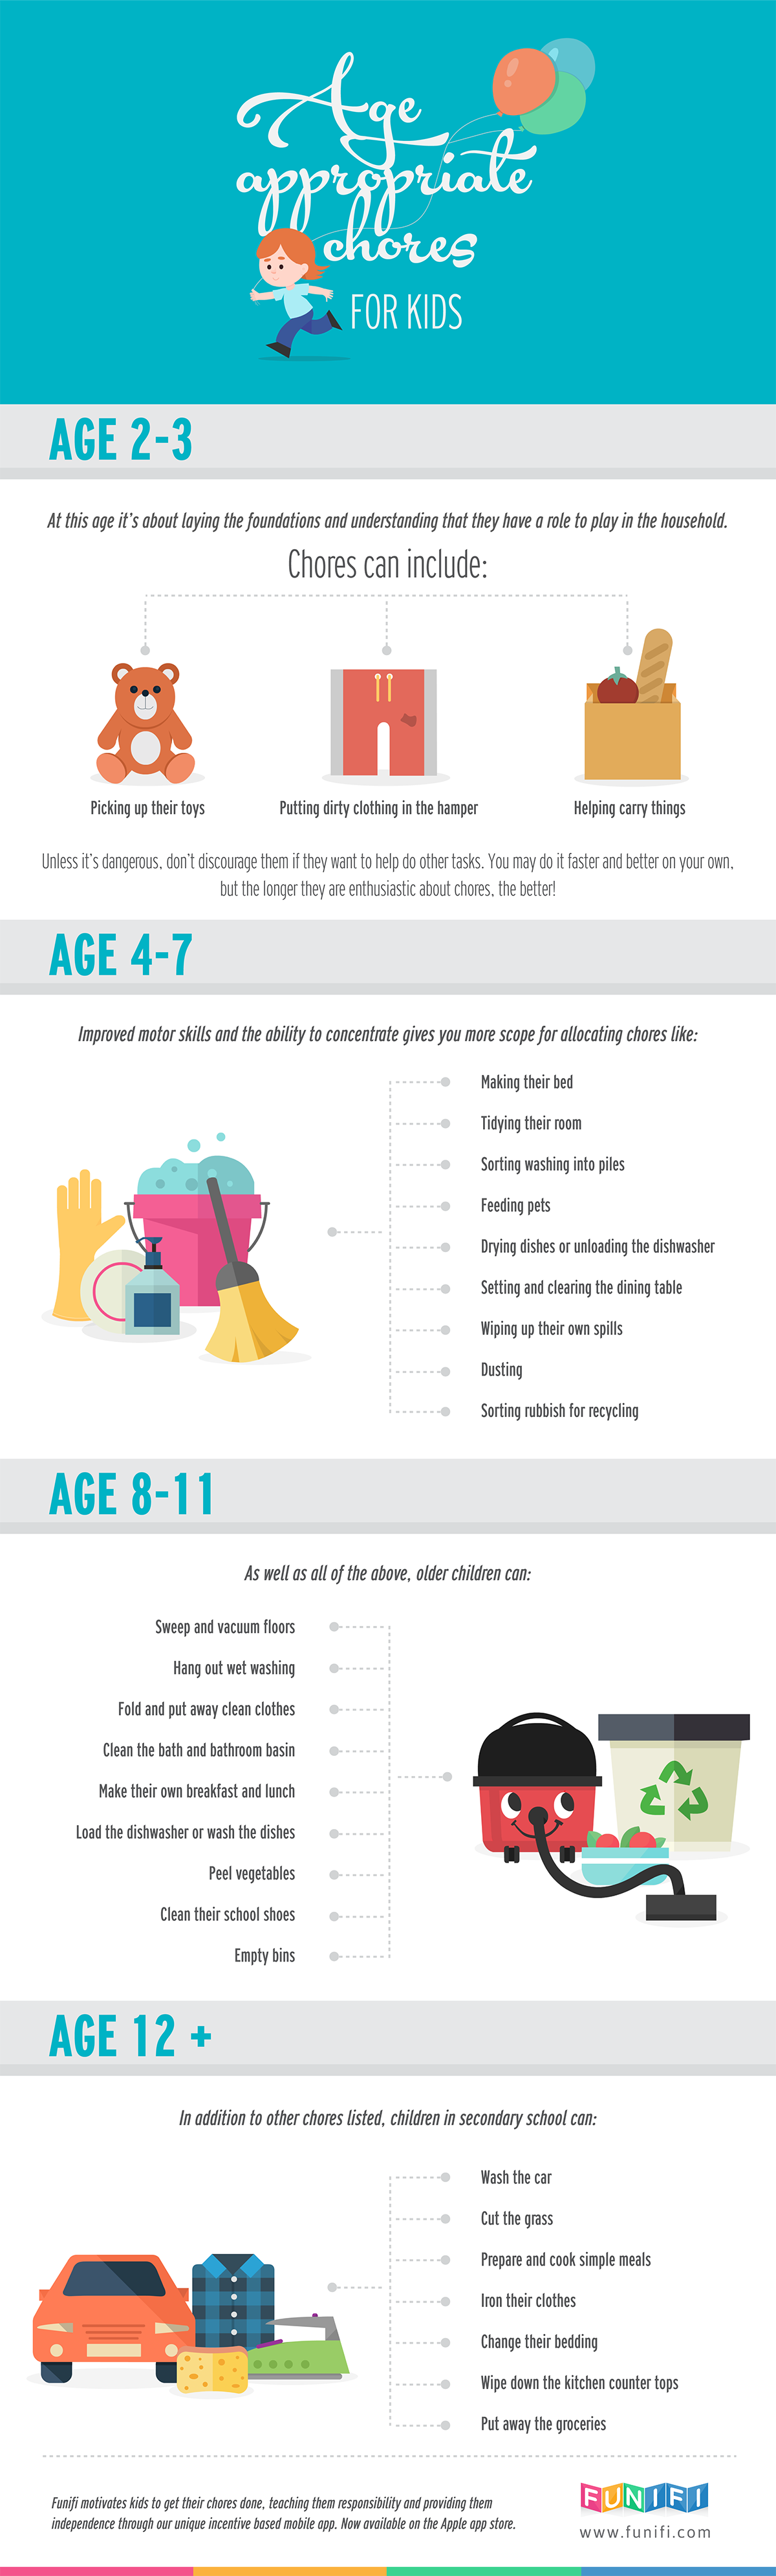 A Complete List Of Age Appropriate Chores For Your Kids